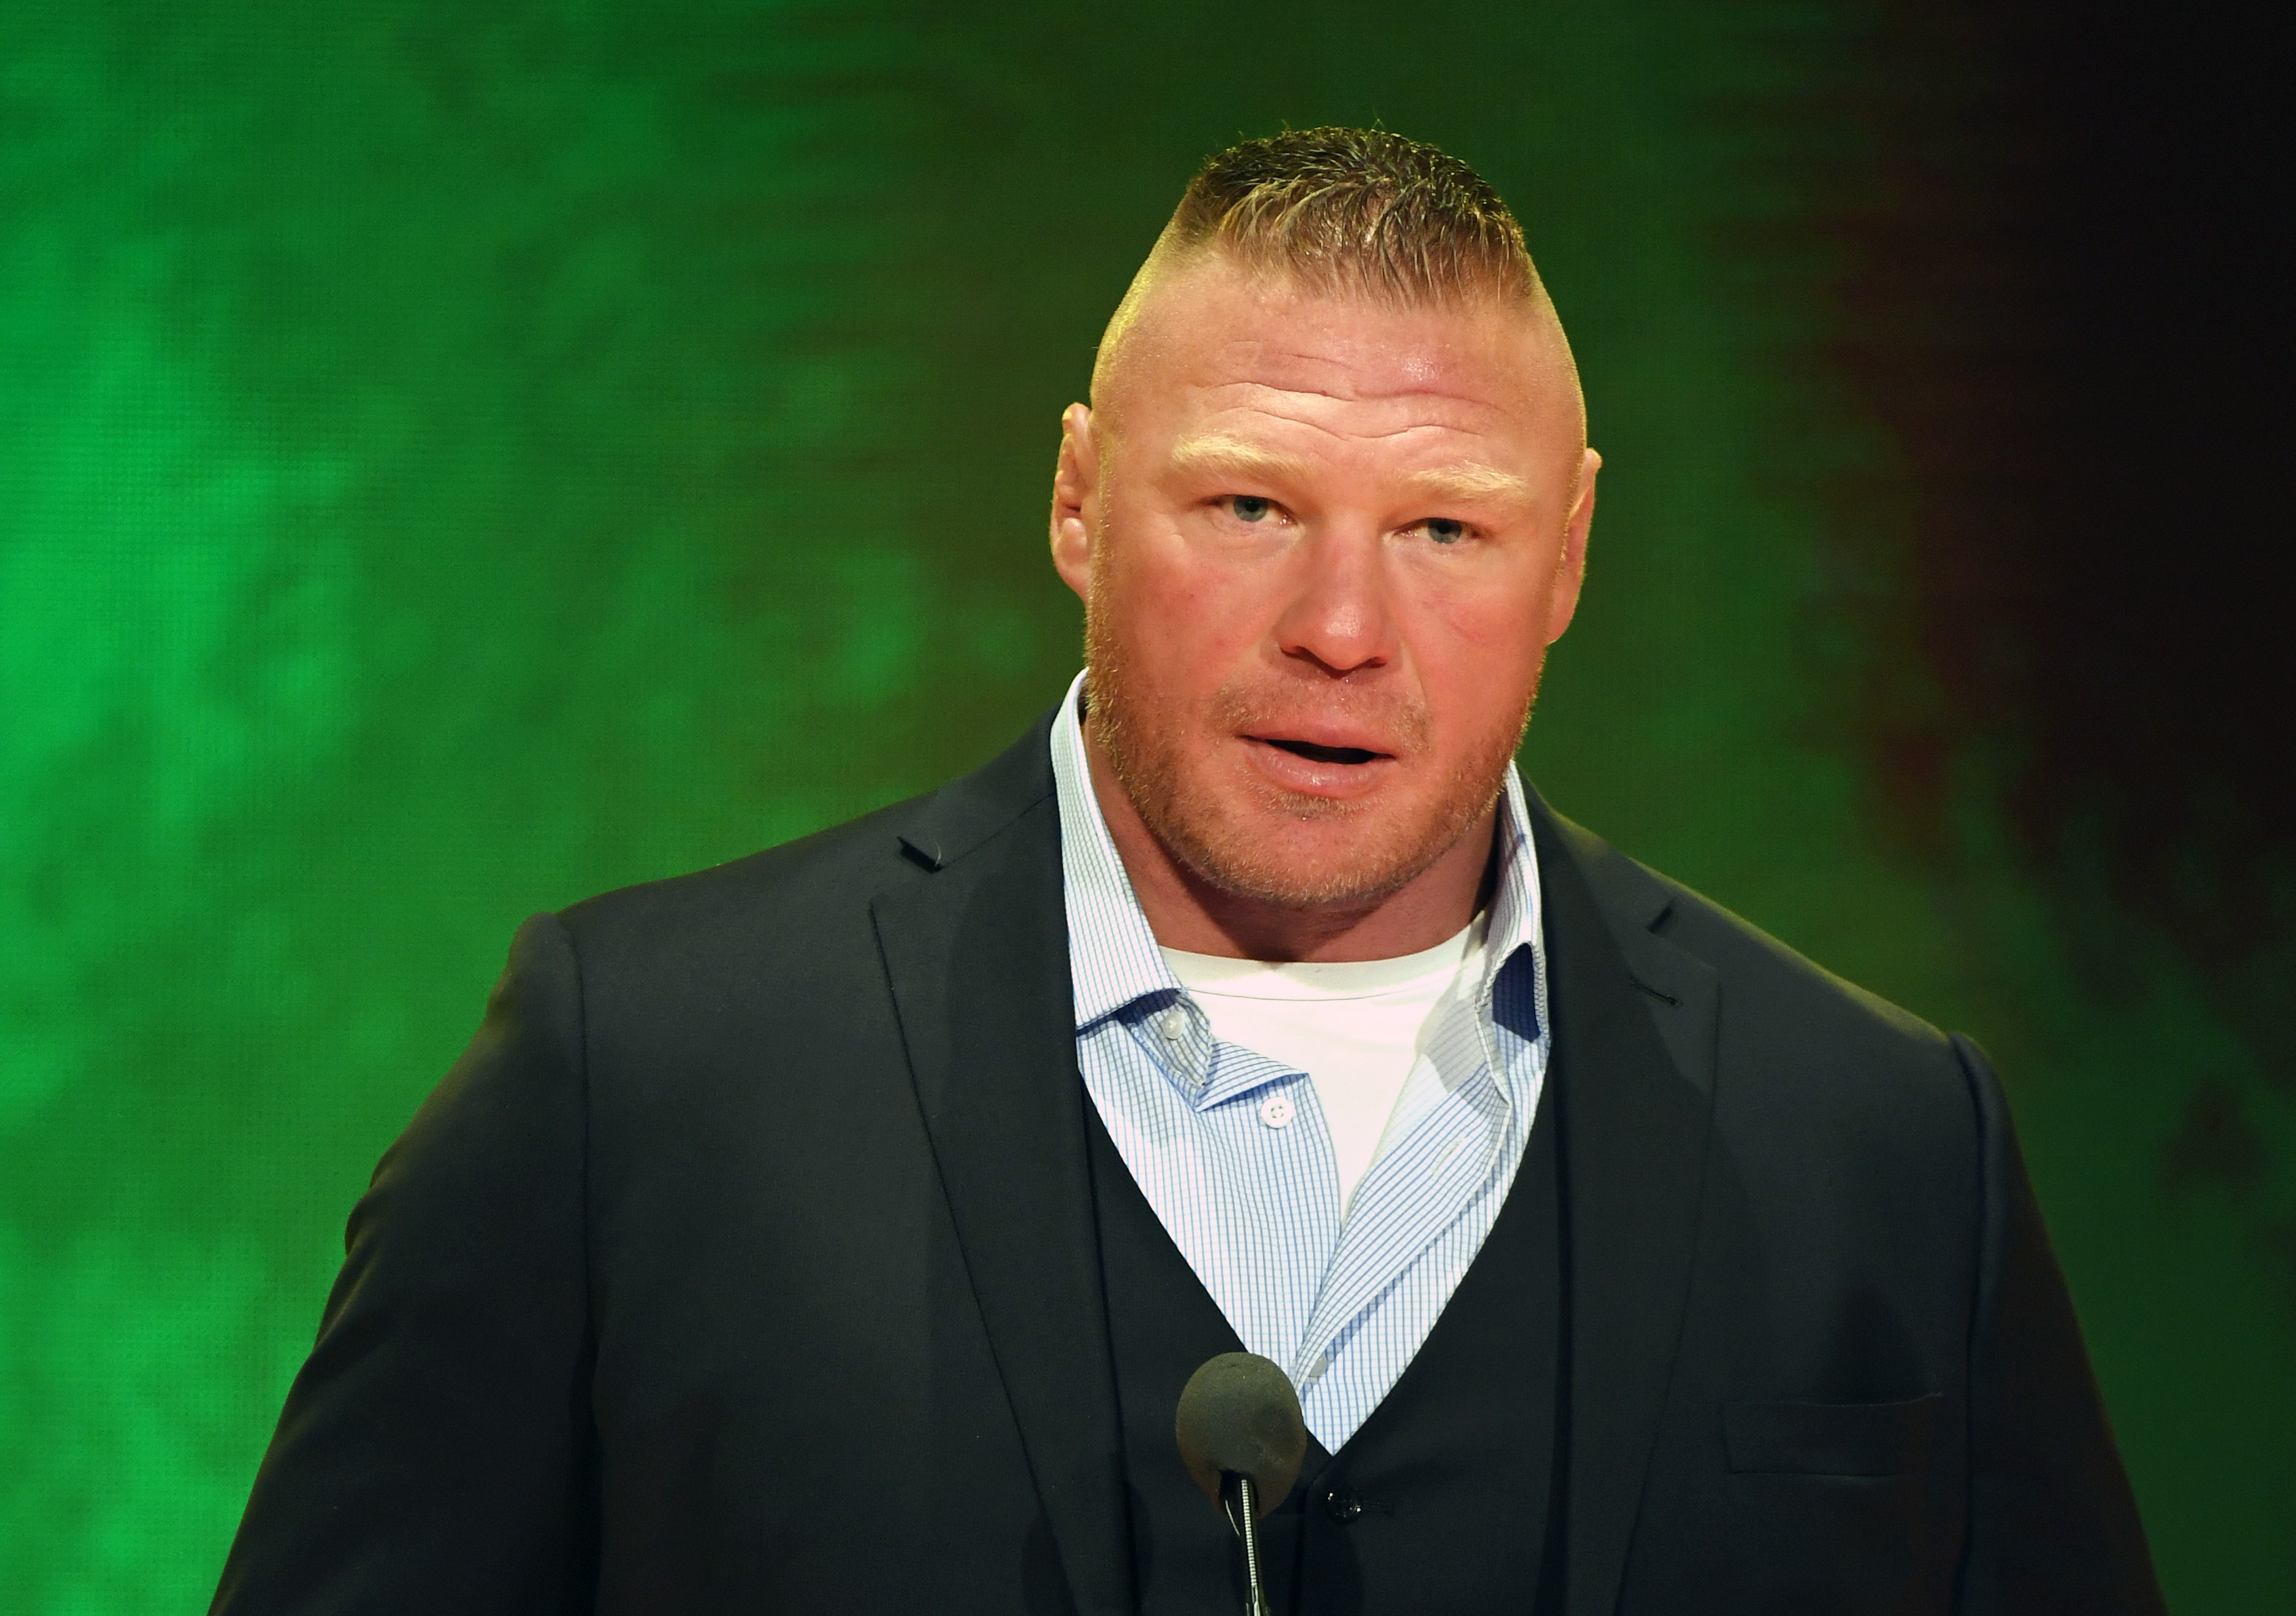 Paul Heyman on Brock Lesnar Returning to UFC: 'He Can Make a Lot More Money' in WWE